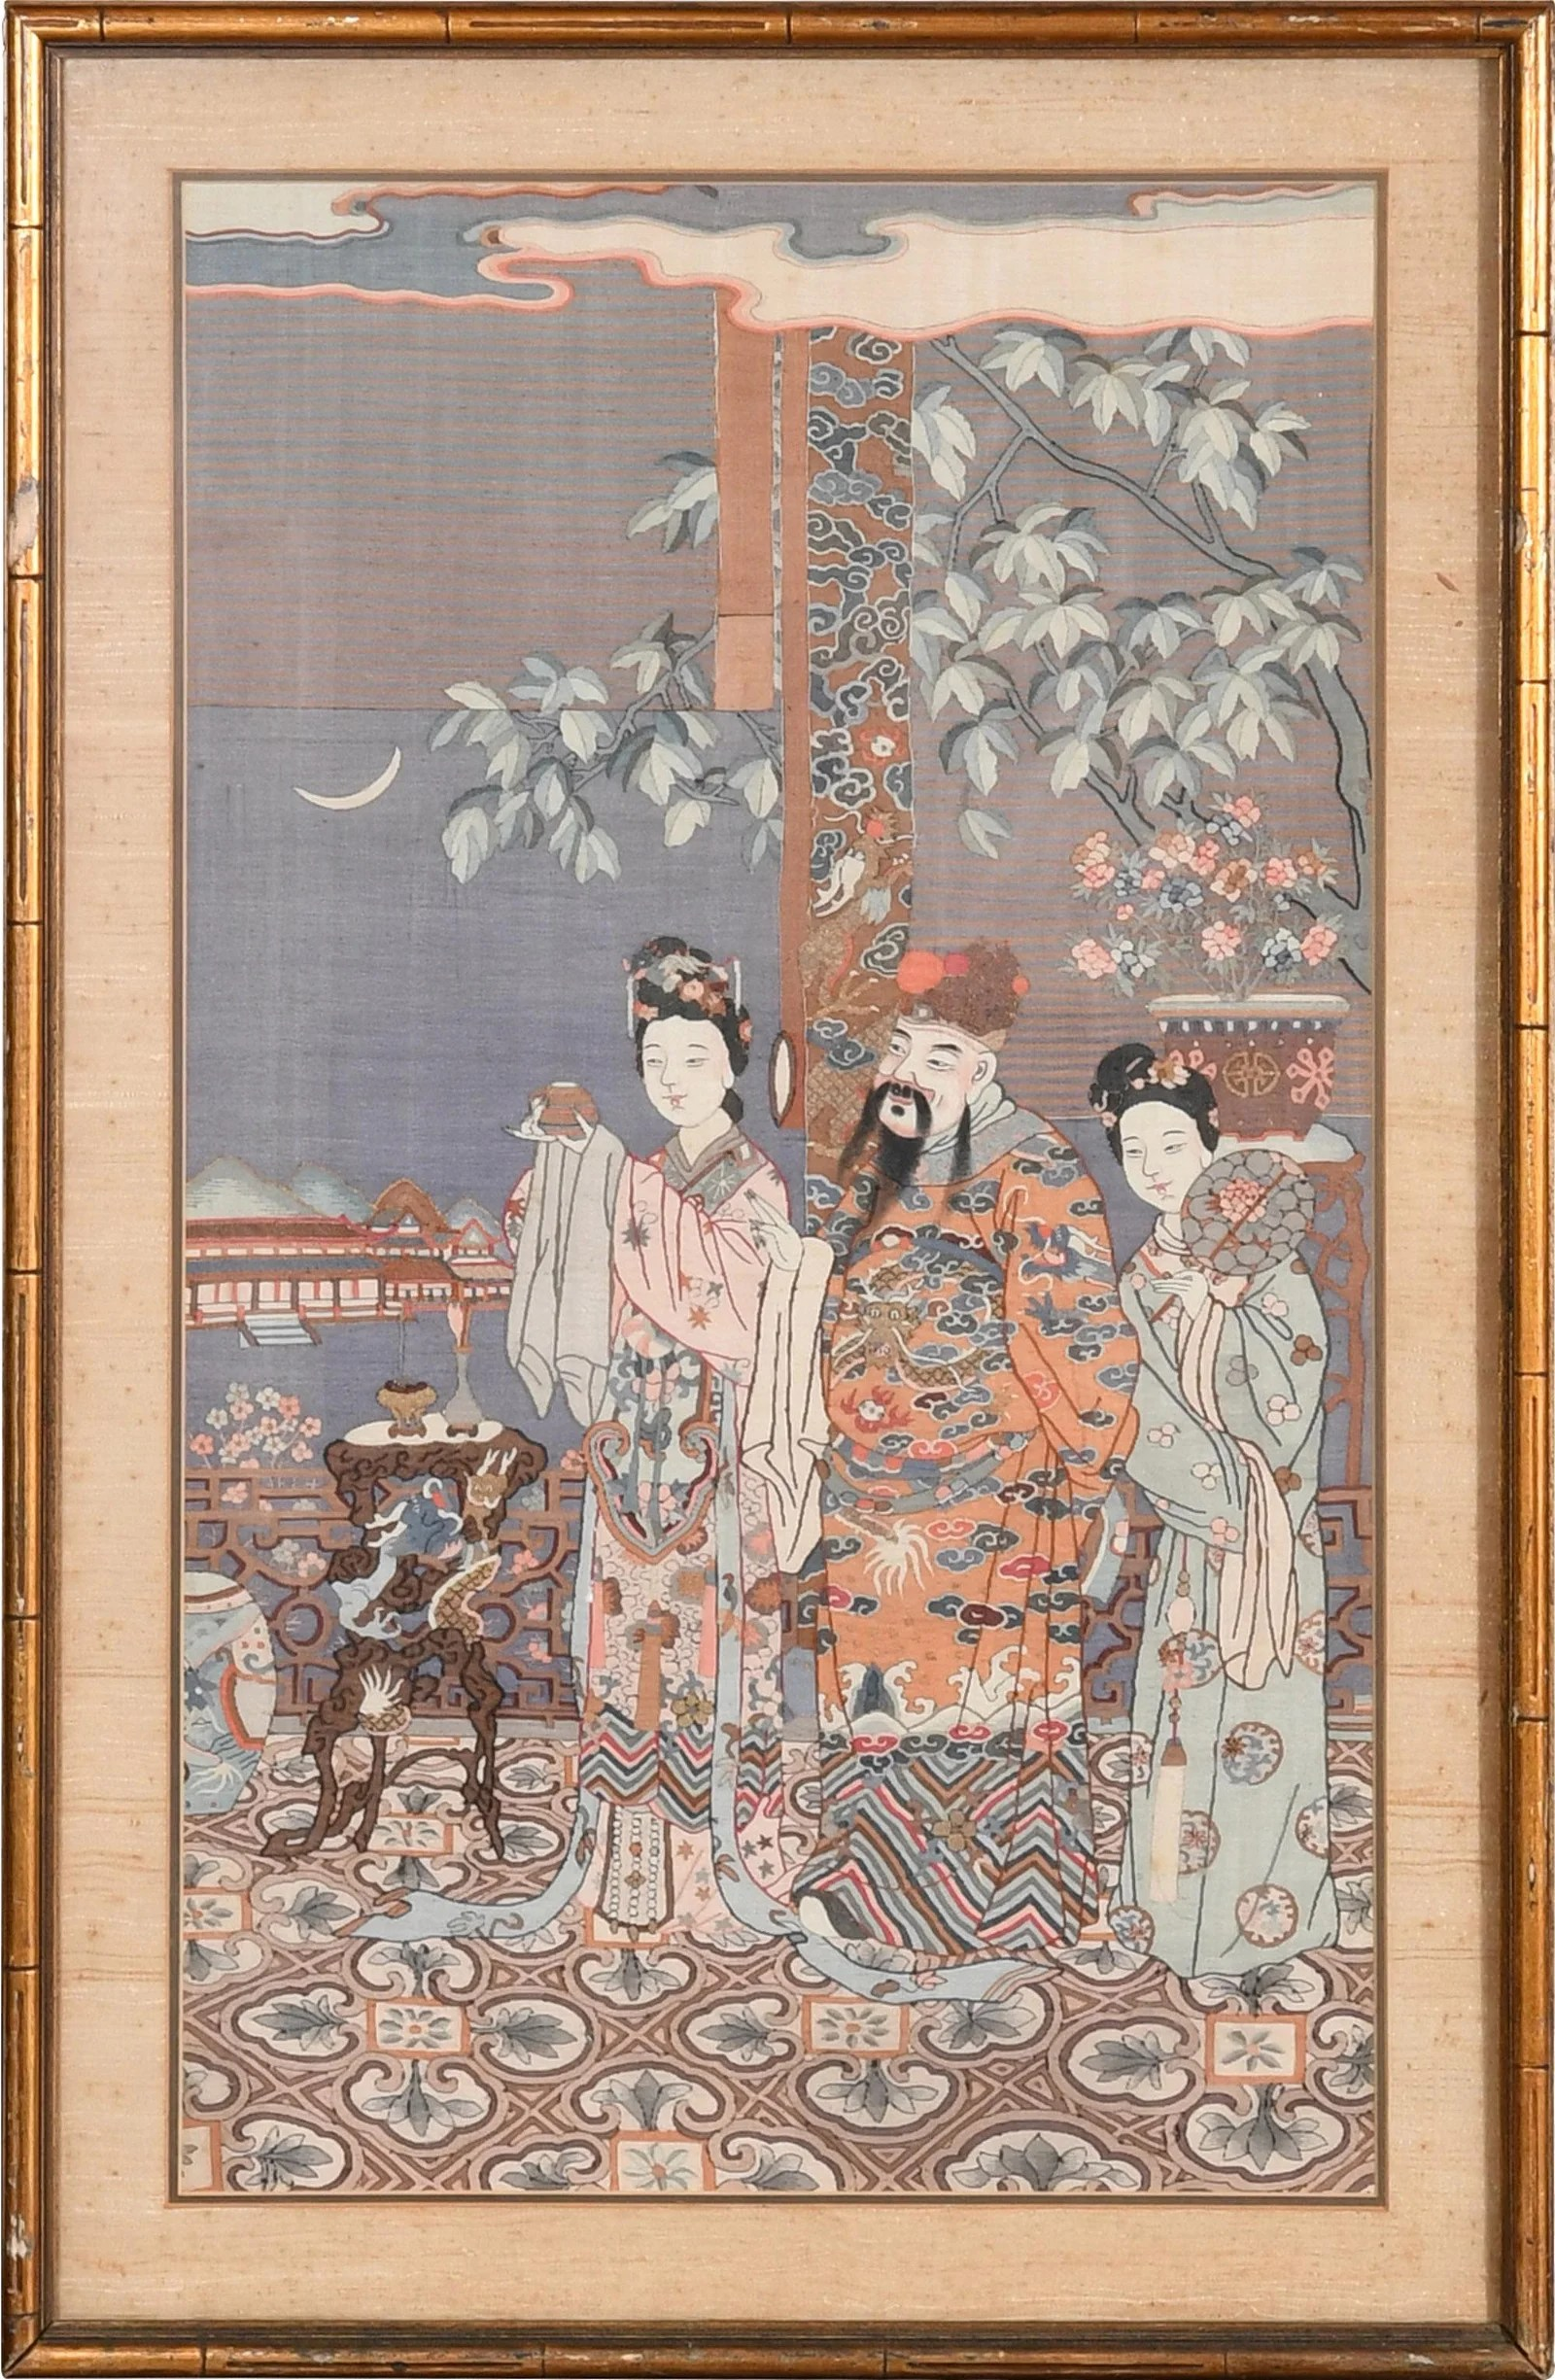 Chinese Kesi Panel of 3 Figures, Late 19th Century